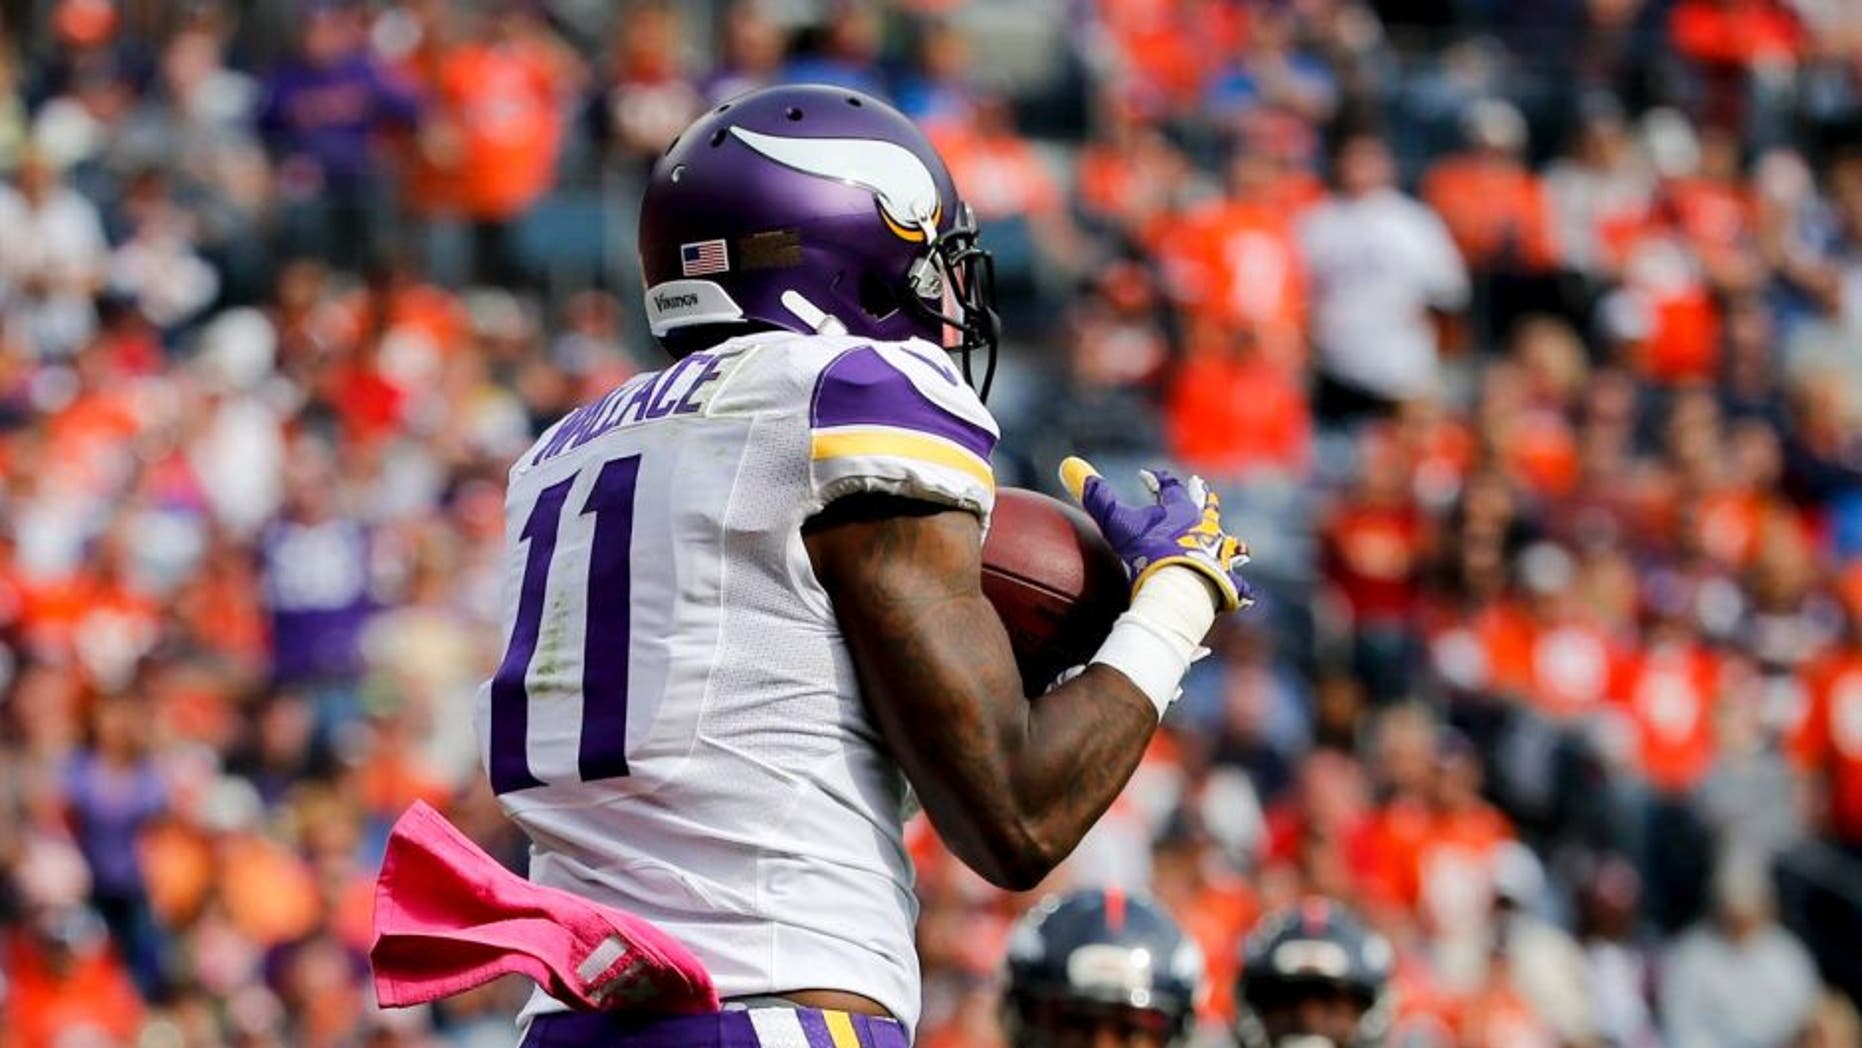 Minnesota Vikings wide receiver Mike Wallace catches a touchdown pass during the first half against the Denver Broncos on Sunday, Oct. 4, 2015, in Denver.